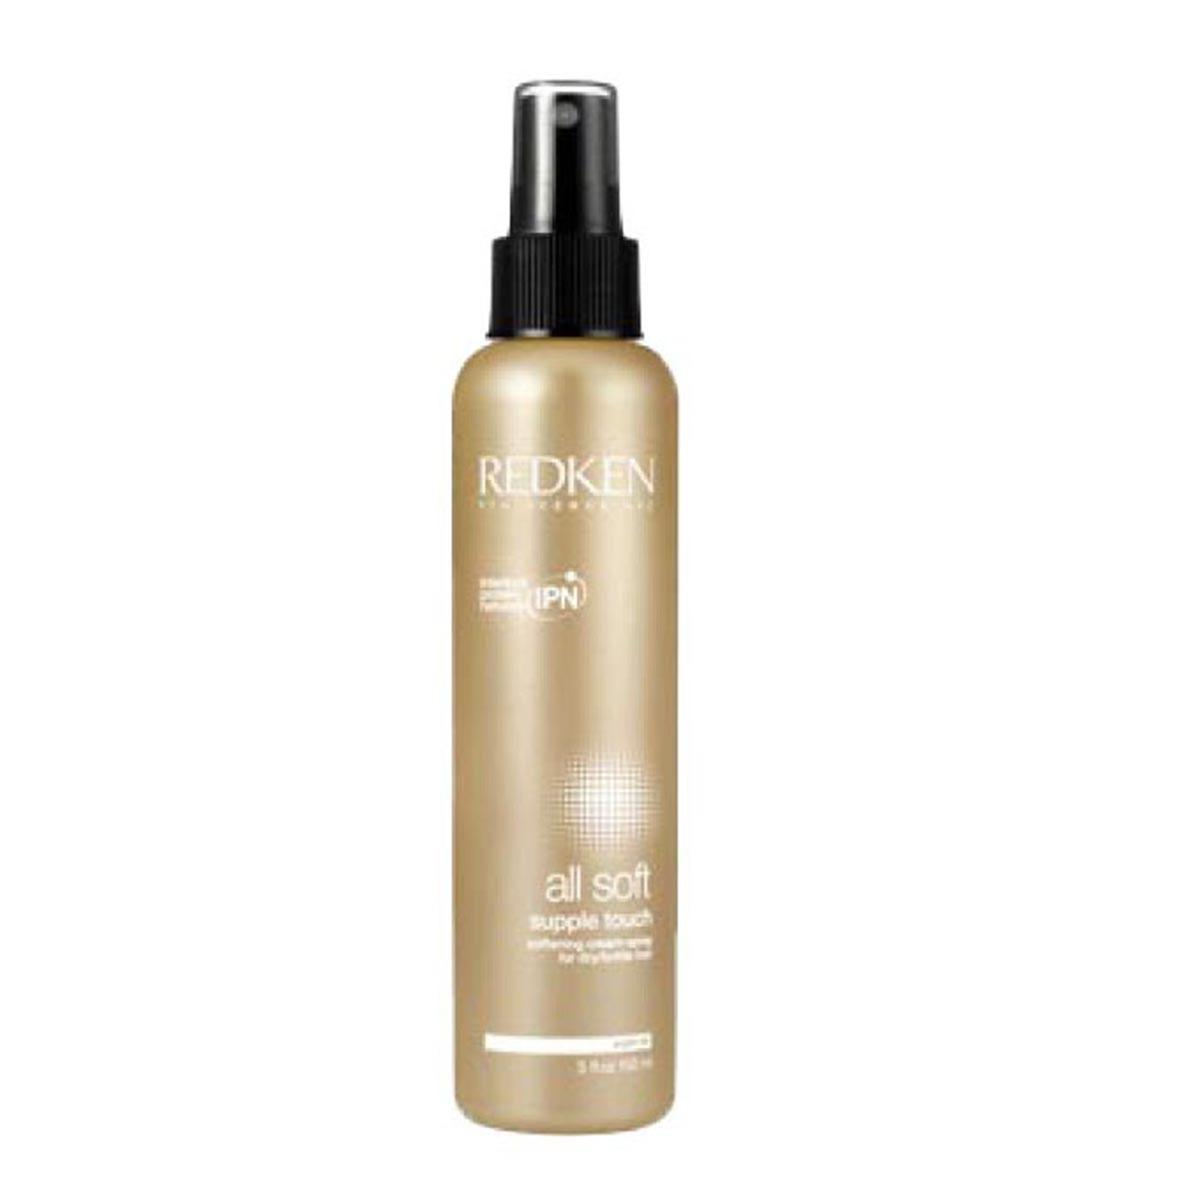 Redken All Soft Supple Touch Treatment 150 ml